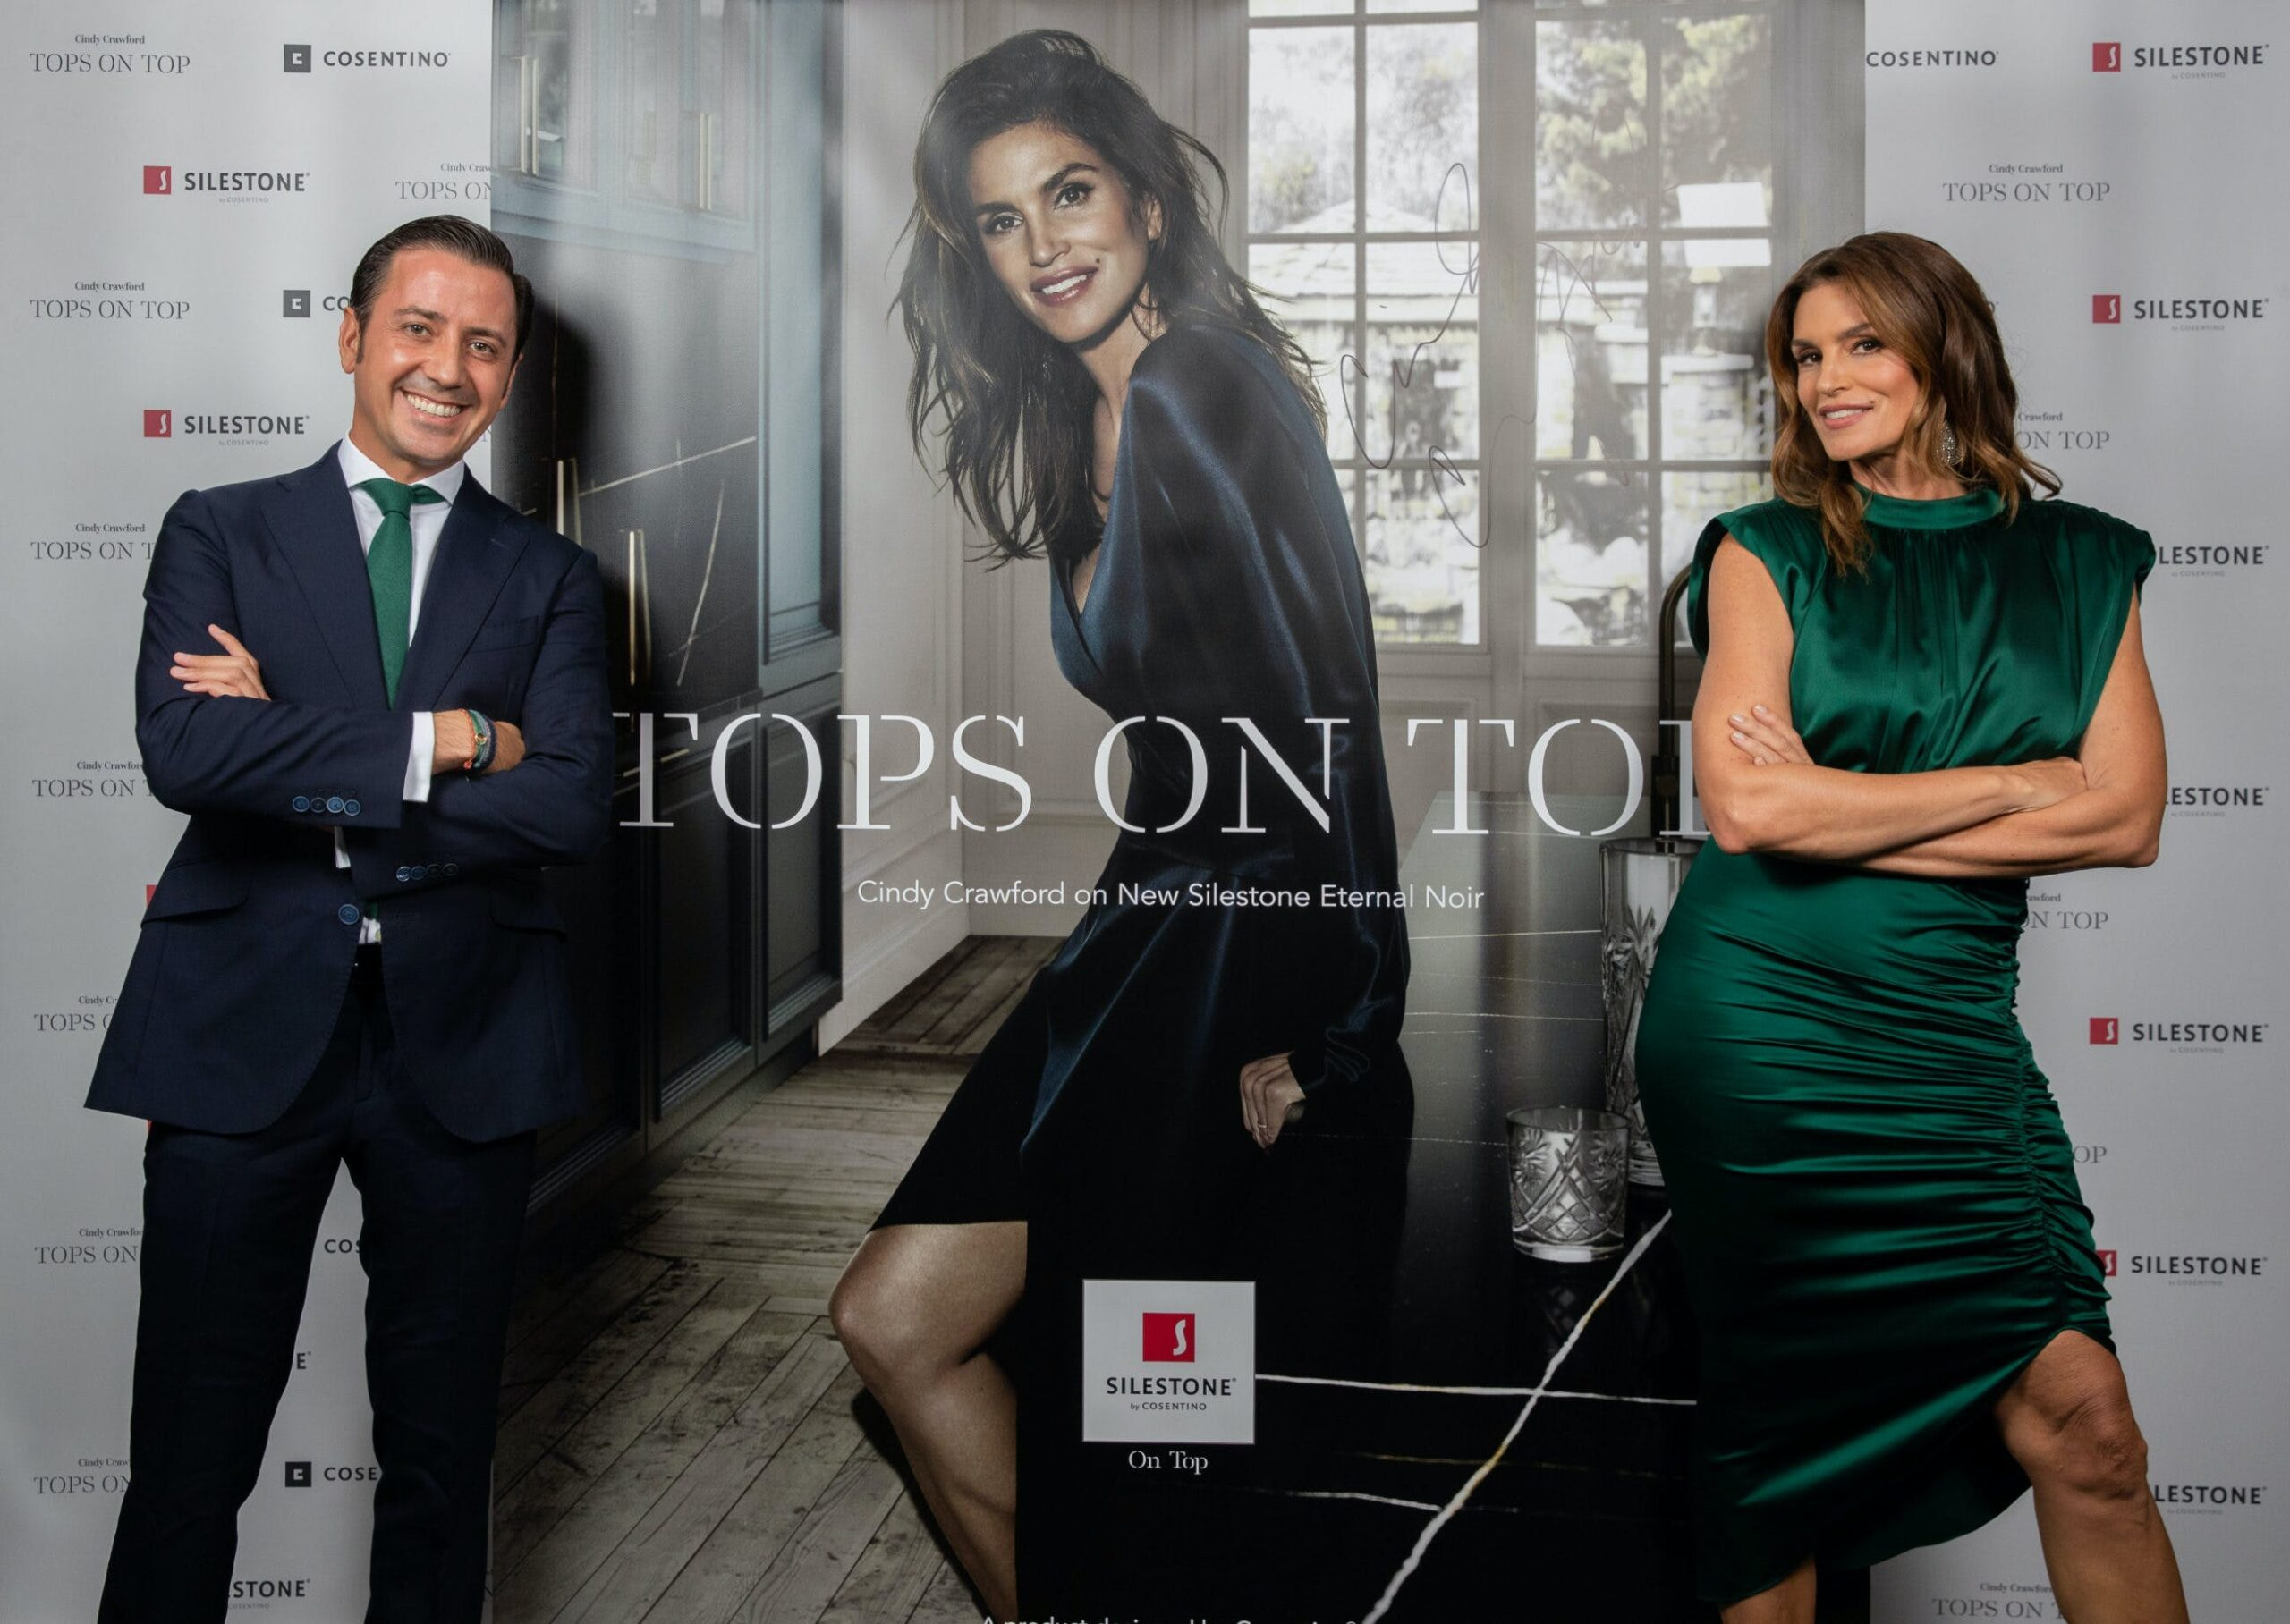 """Image of Eduardo Cosentino y Cindy Crawford Tops On Top 2019 Londres 3 scaled in Silestone® Presents its New """"Tops on Top 2019"""" Campaign Featuring Cindy Crawford - Cosentino"""